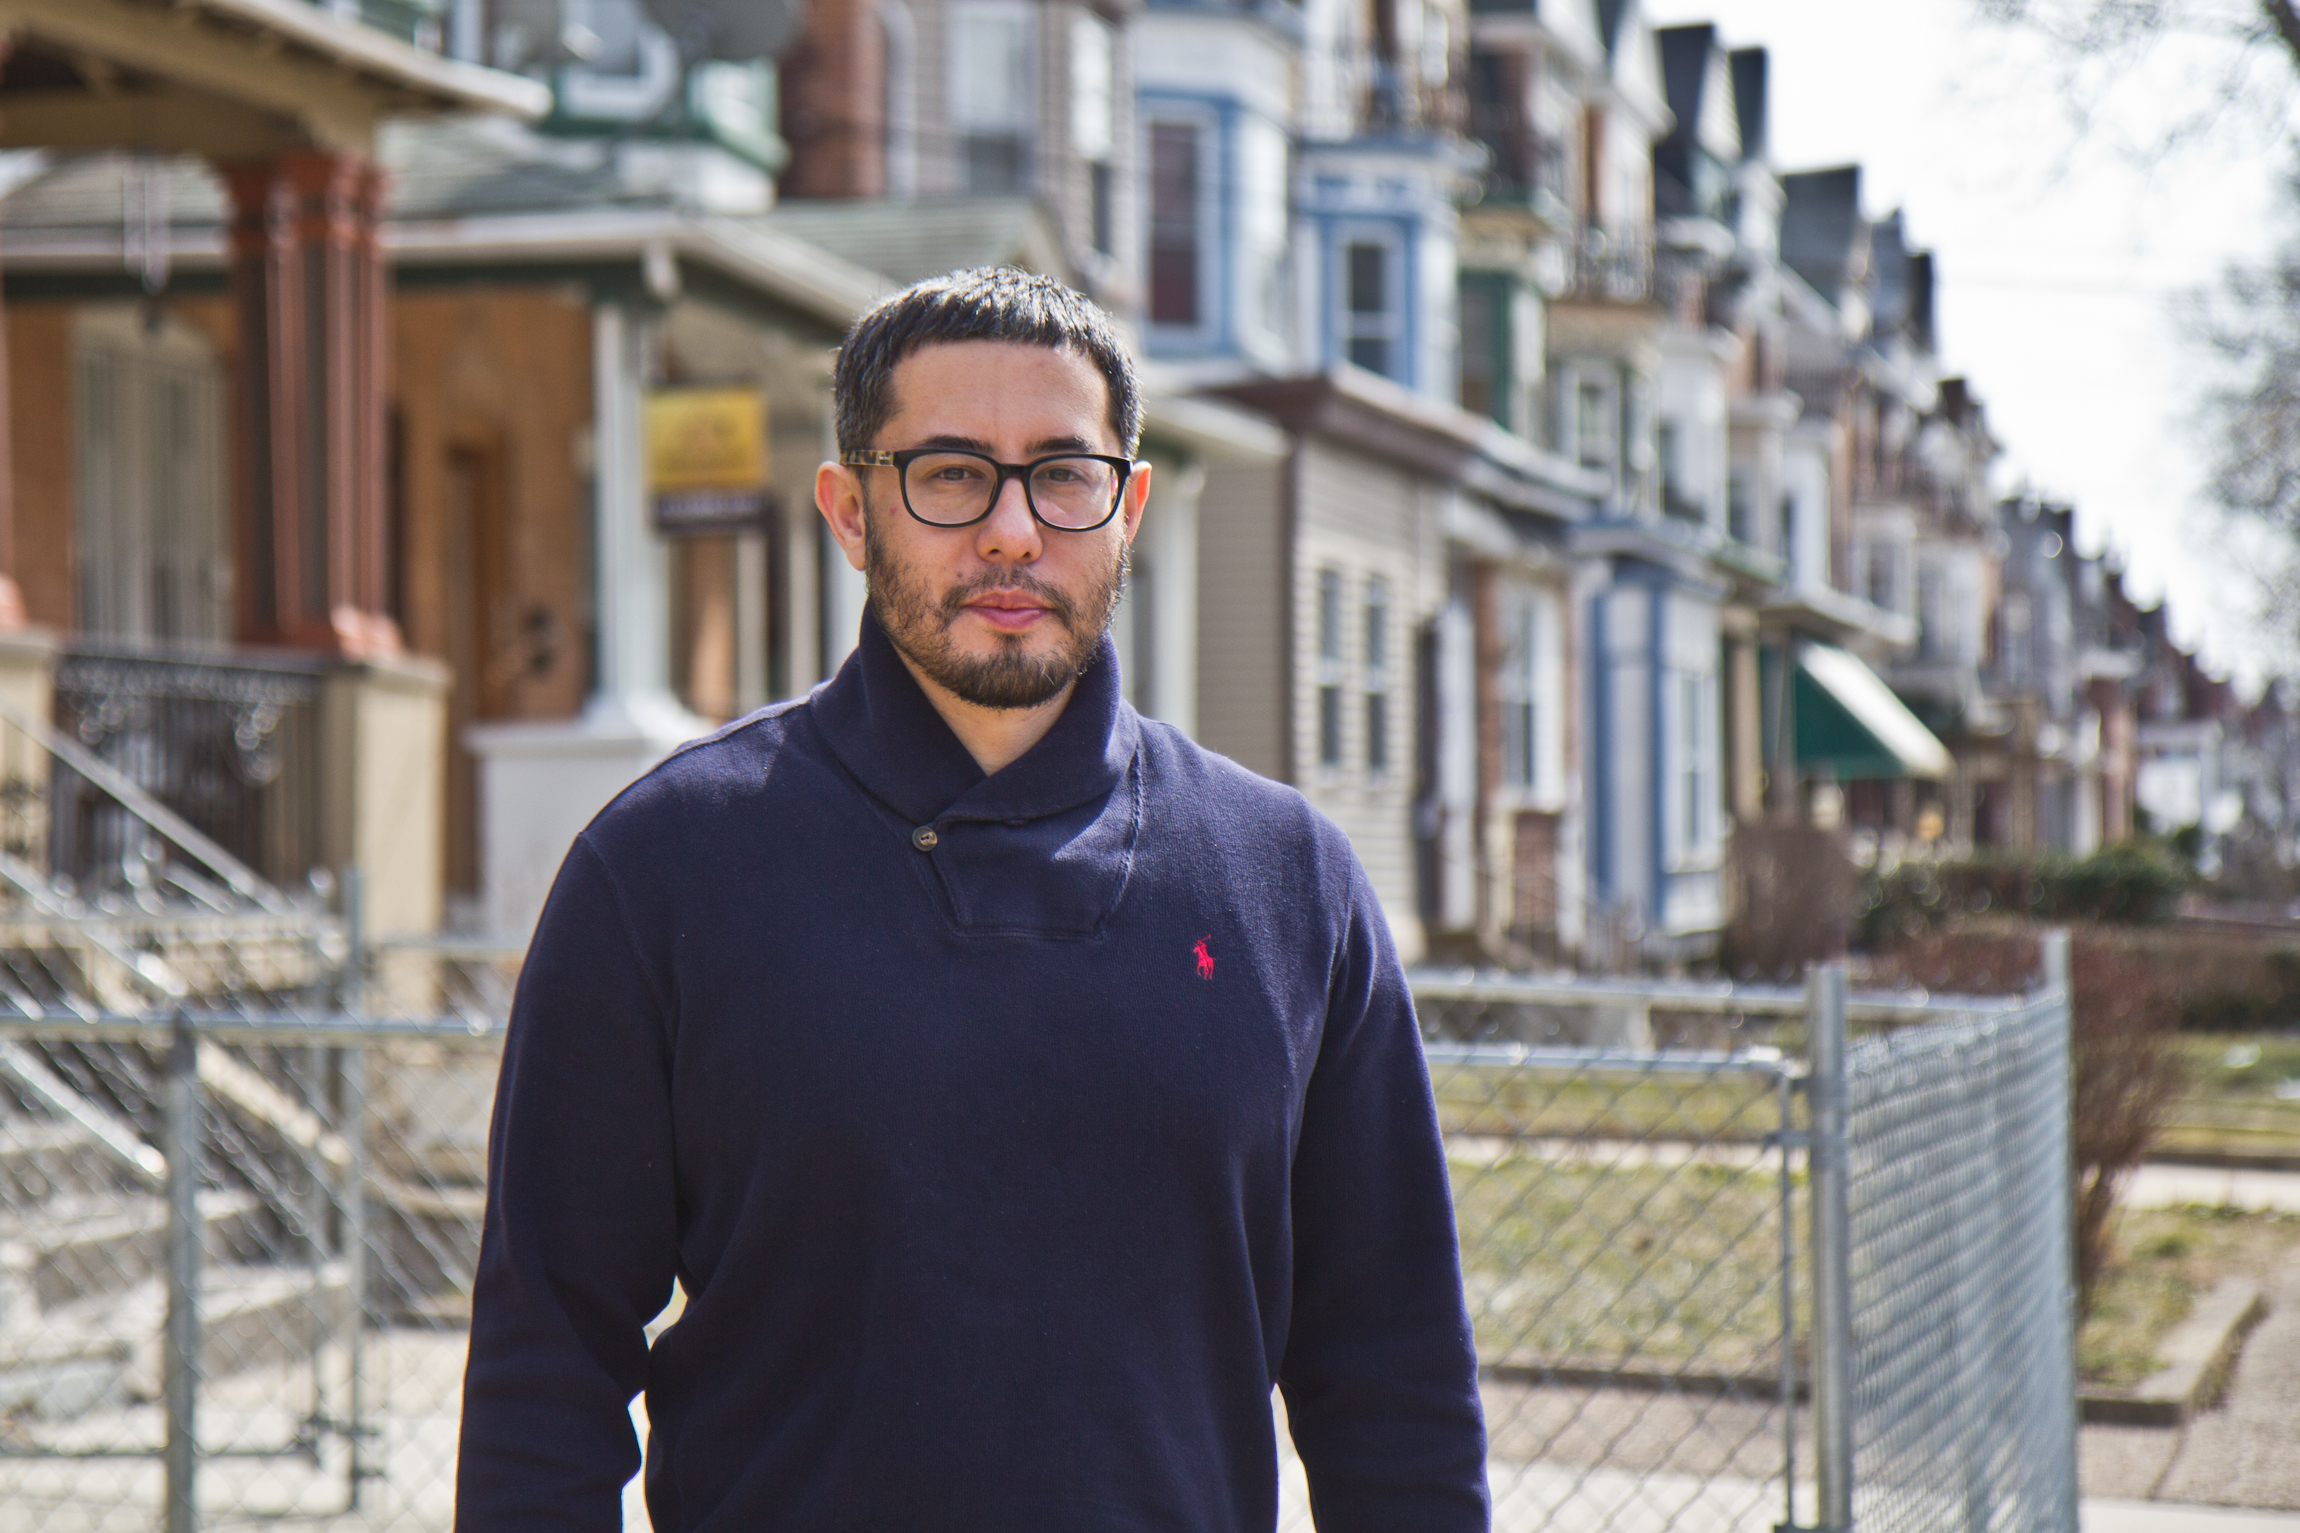 Landlord Anthony Krupincza in front of his property on North 50th Street in West Philadelphia